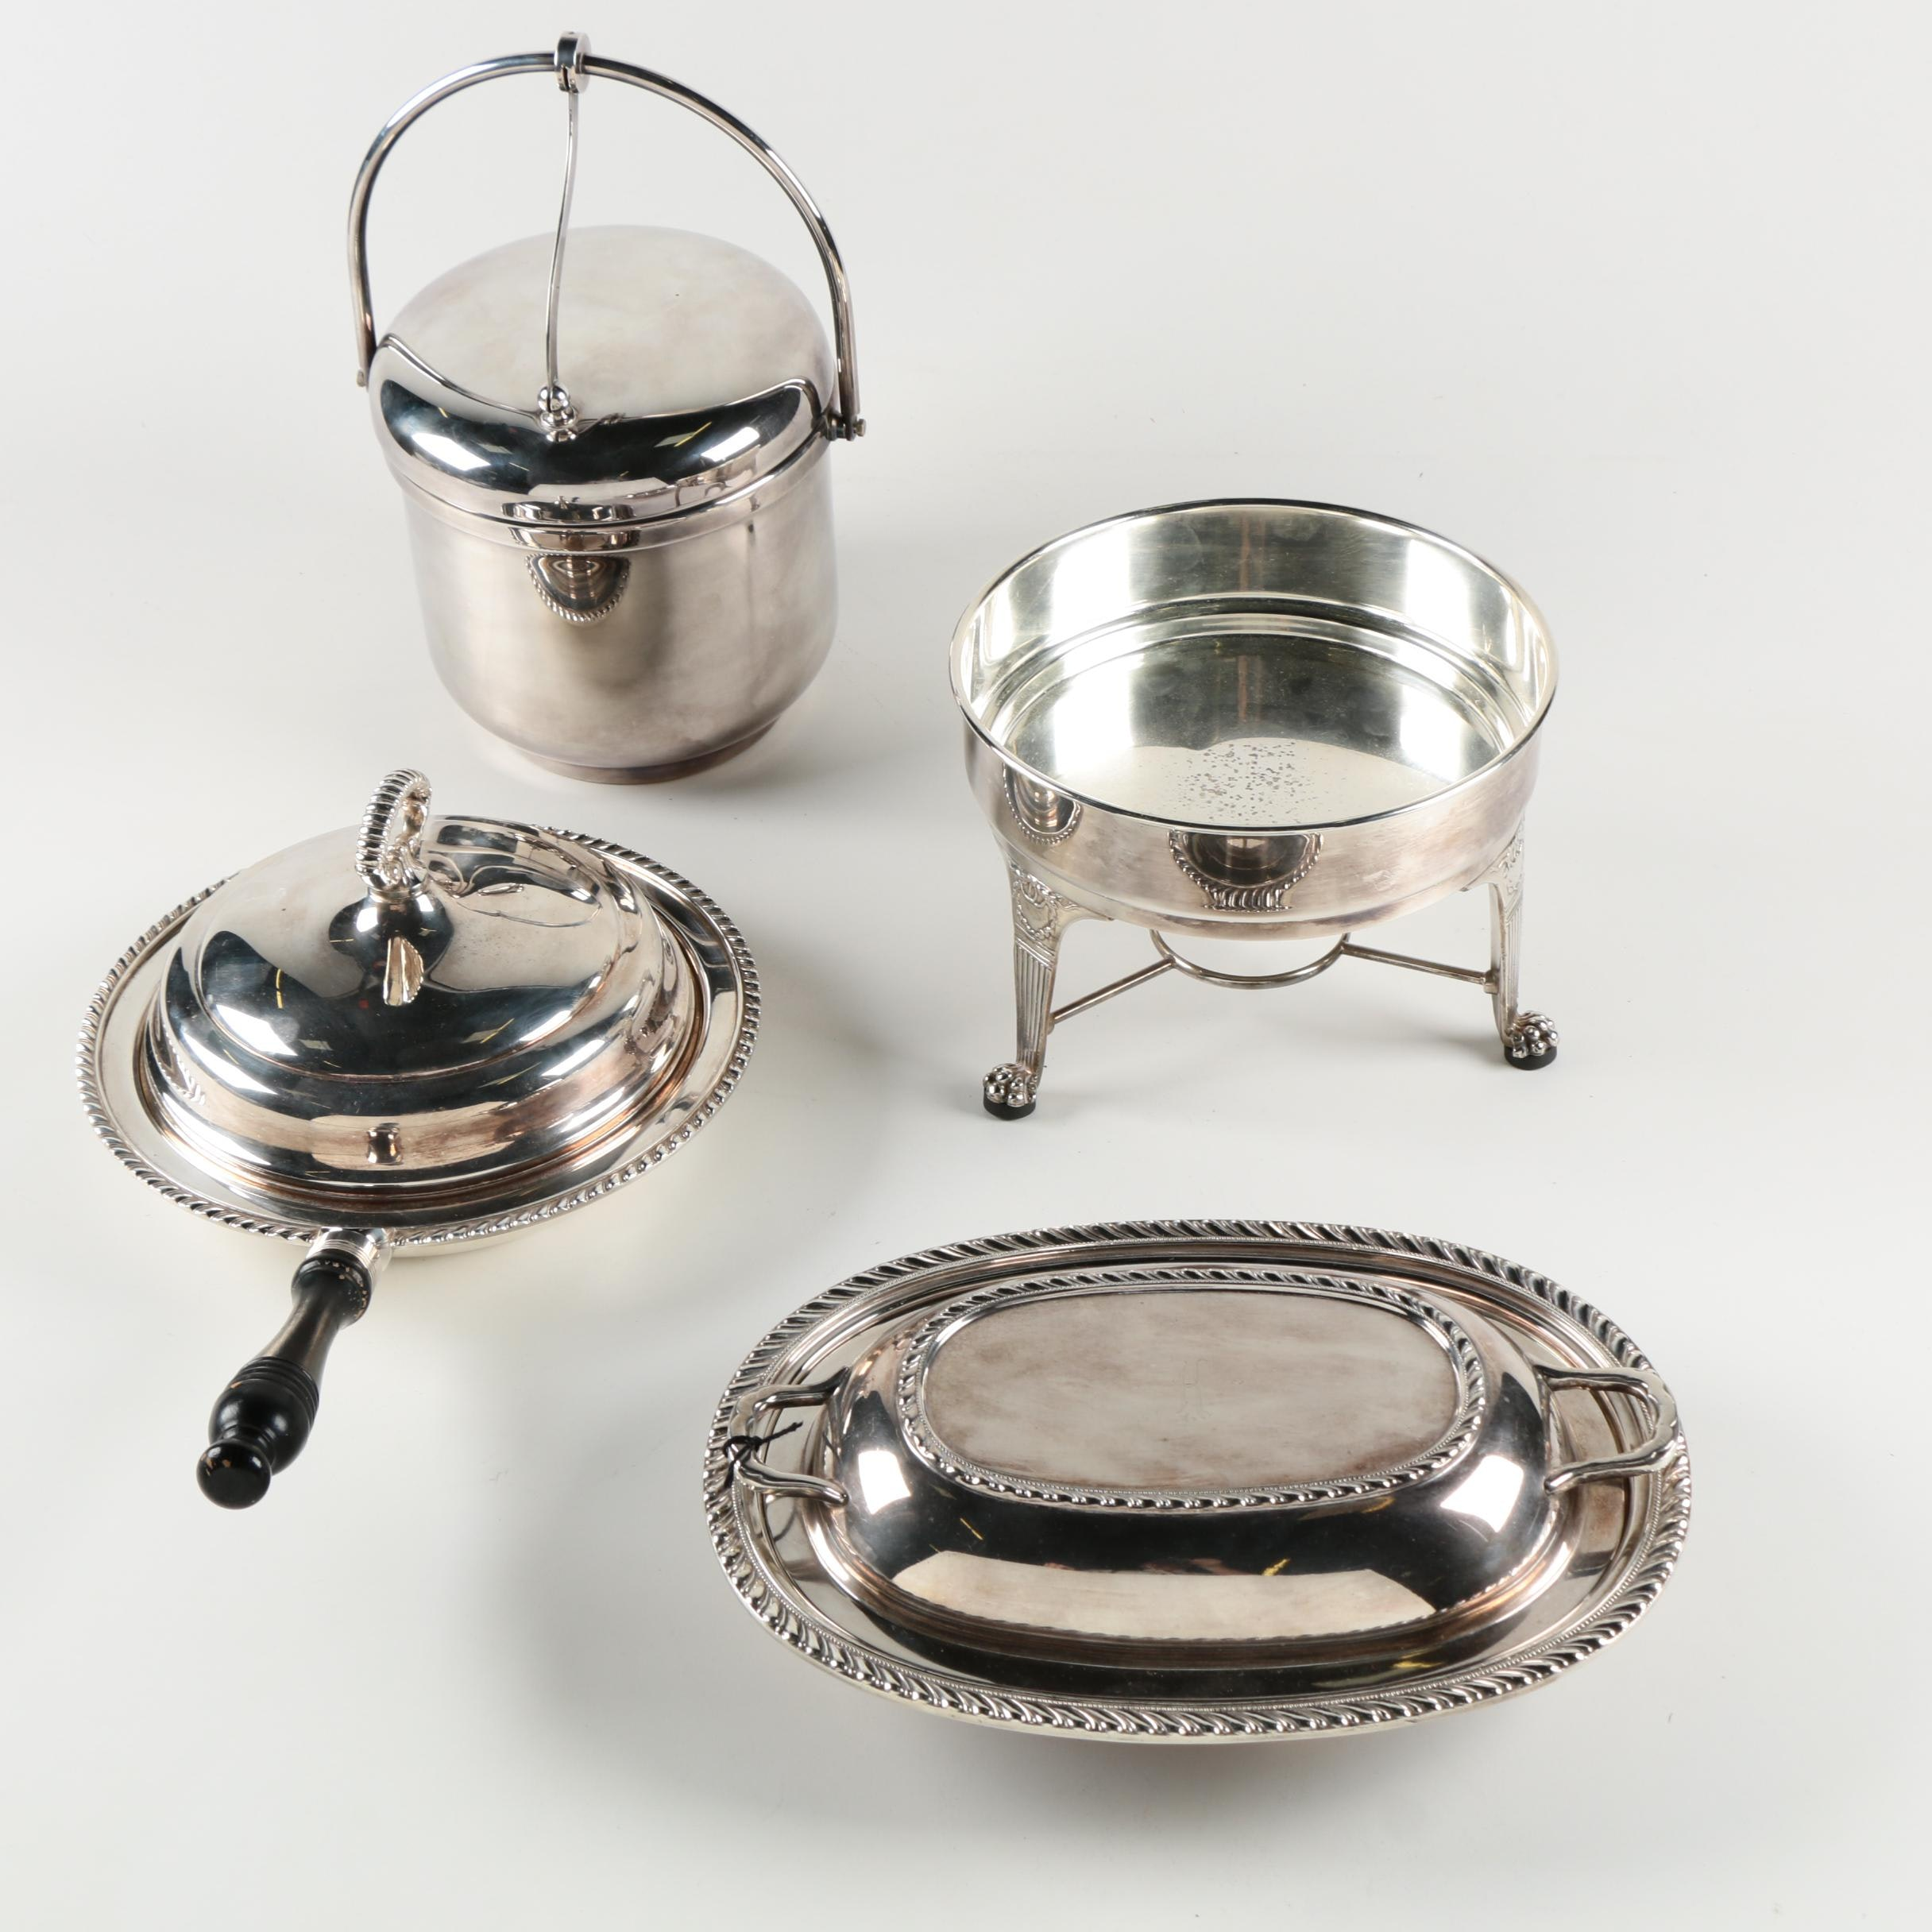 Assorted Silver Plate Serveware Featuring Reed and Barton